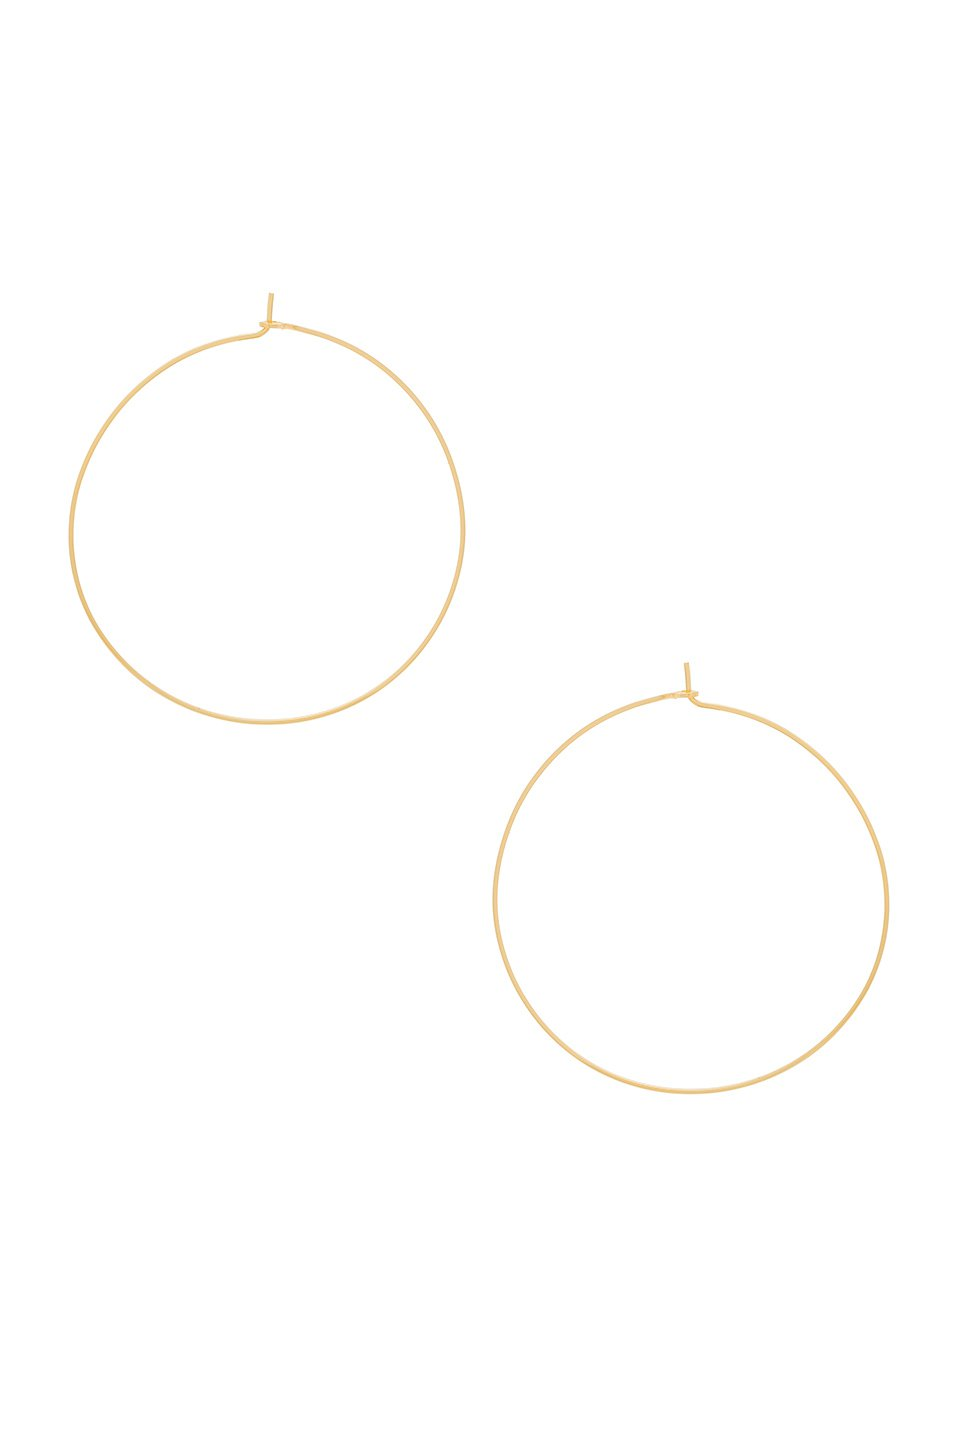 The Capri Wire Hoops